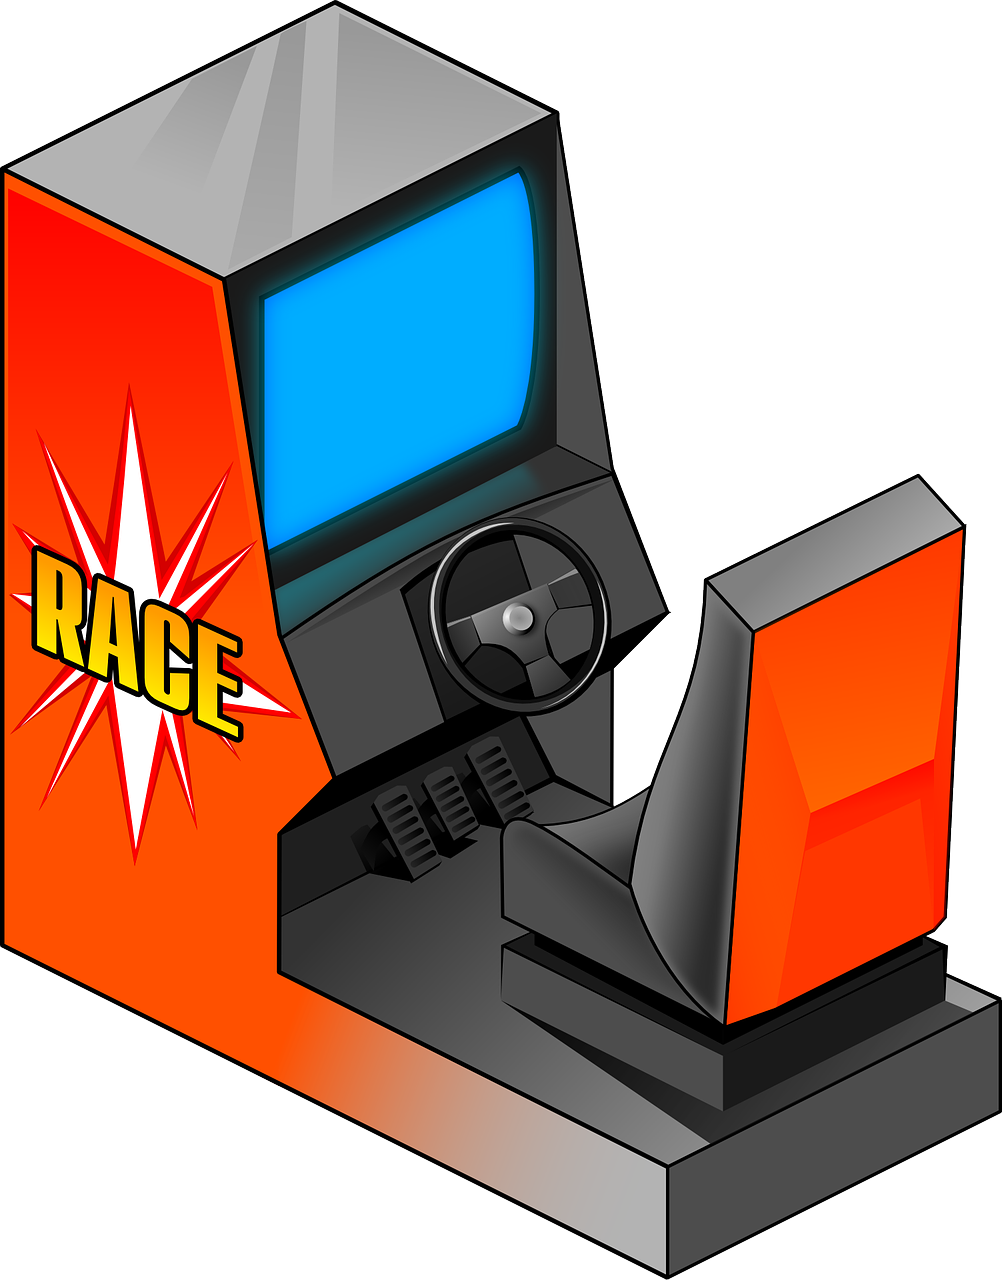 Site Image (Arcade machine racing game)